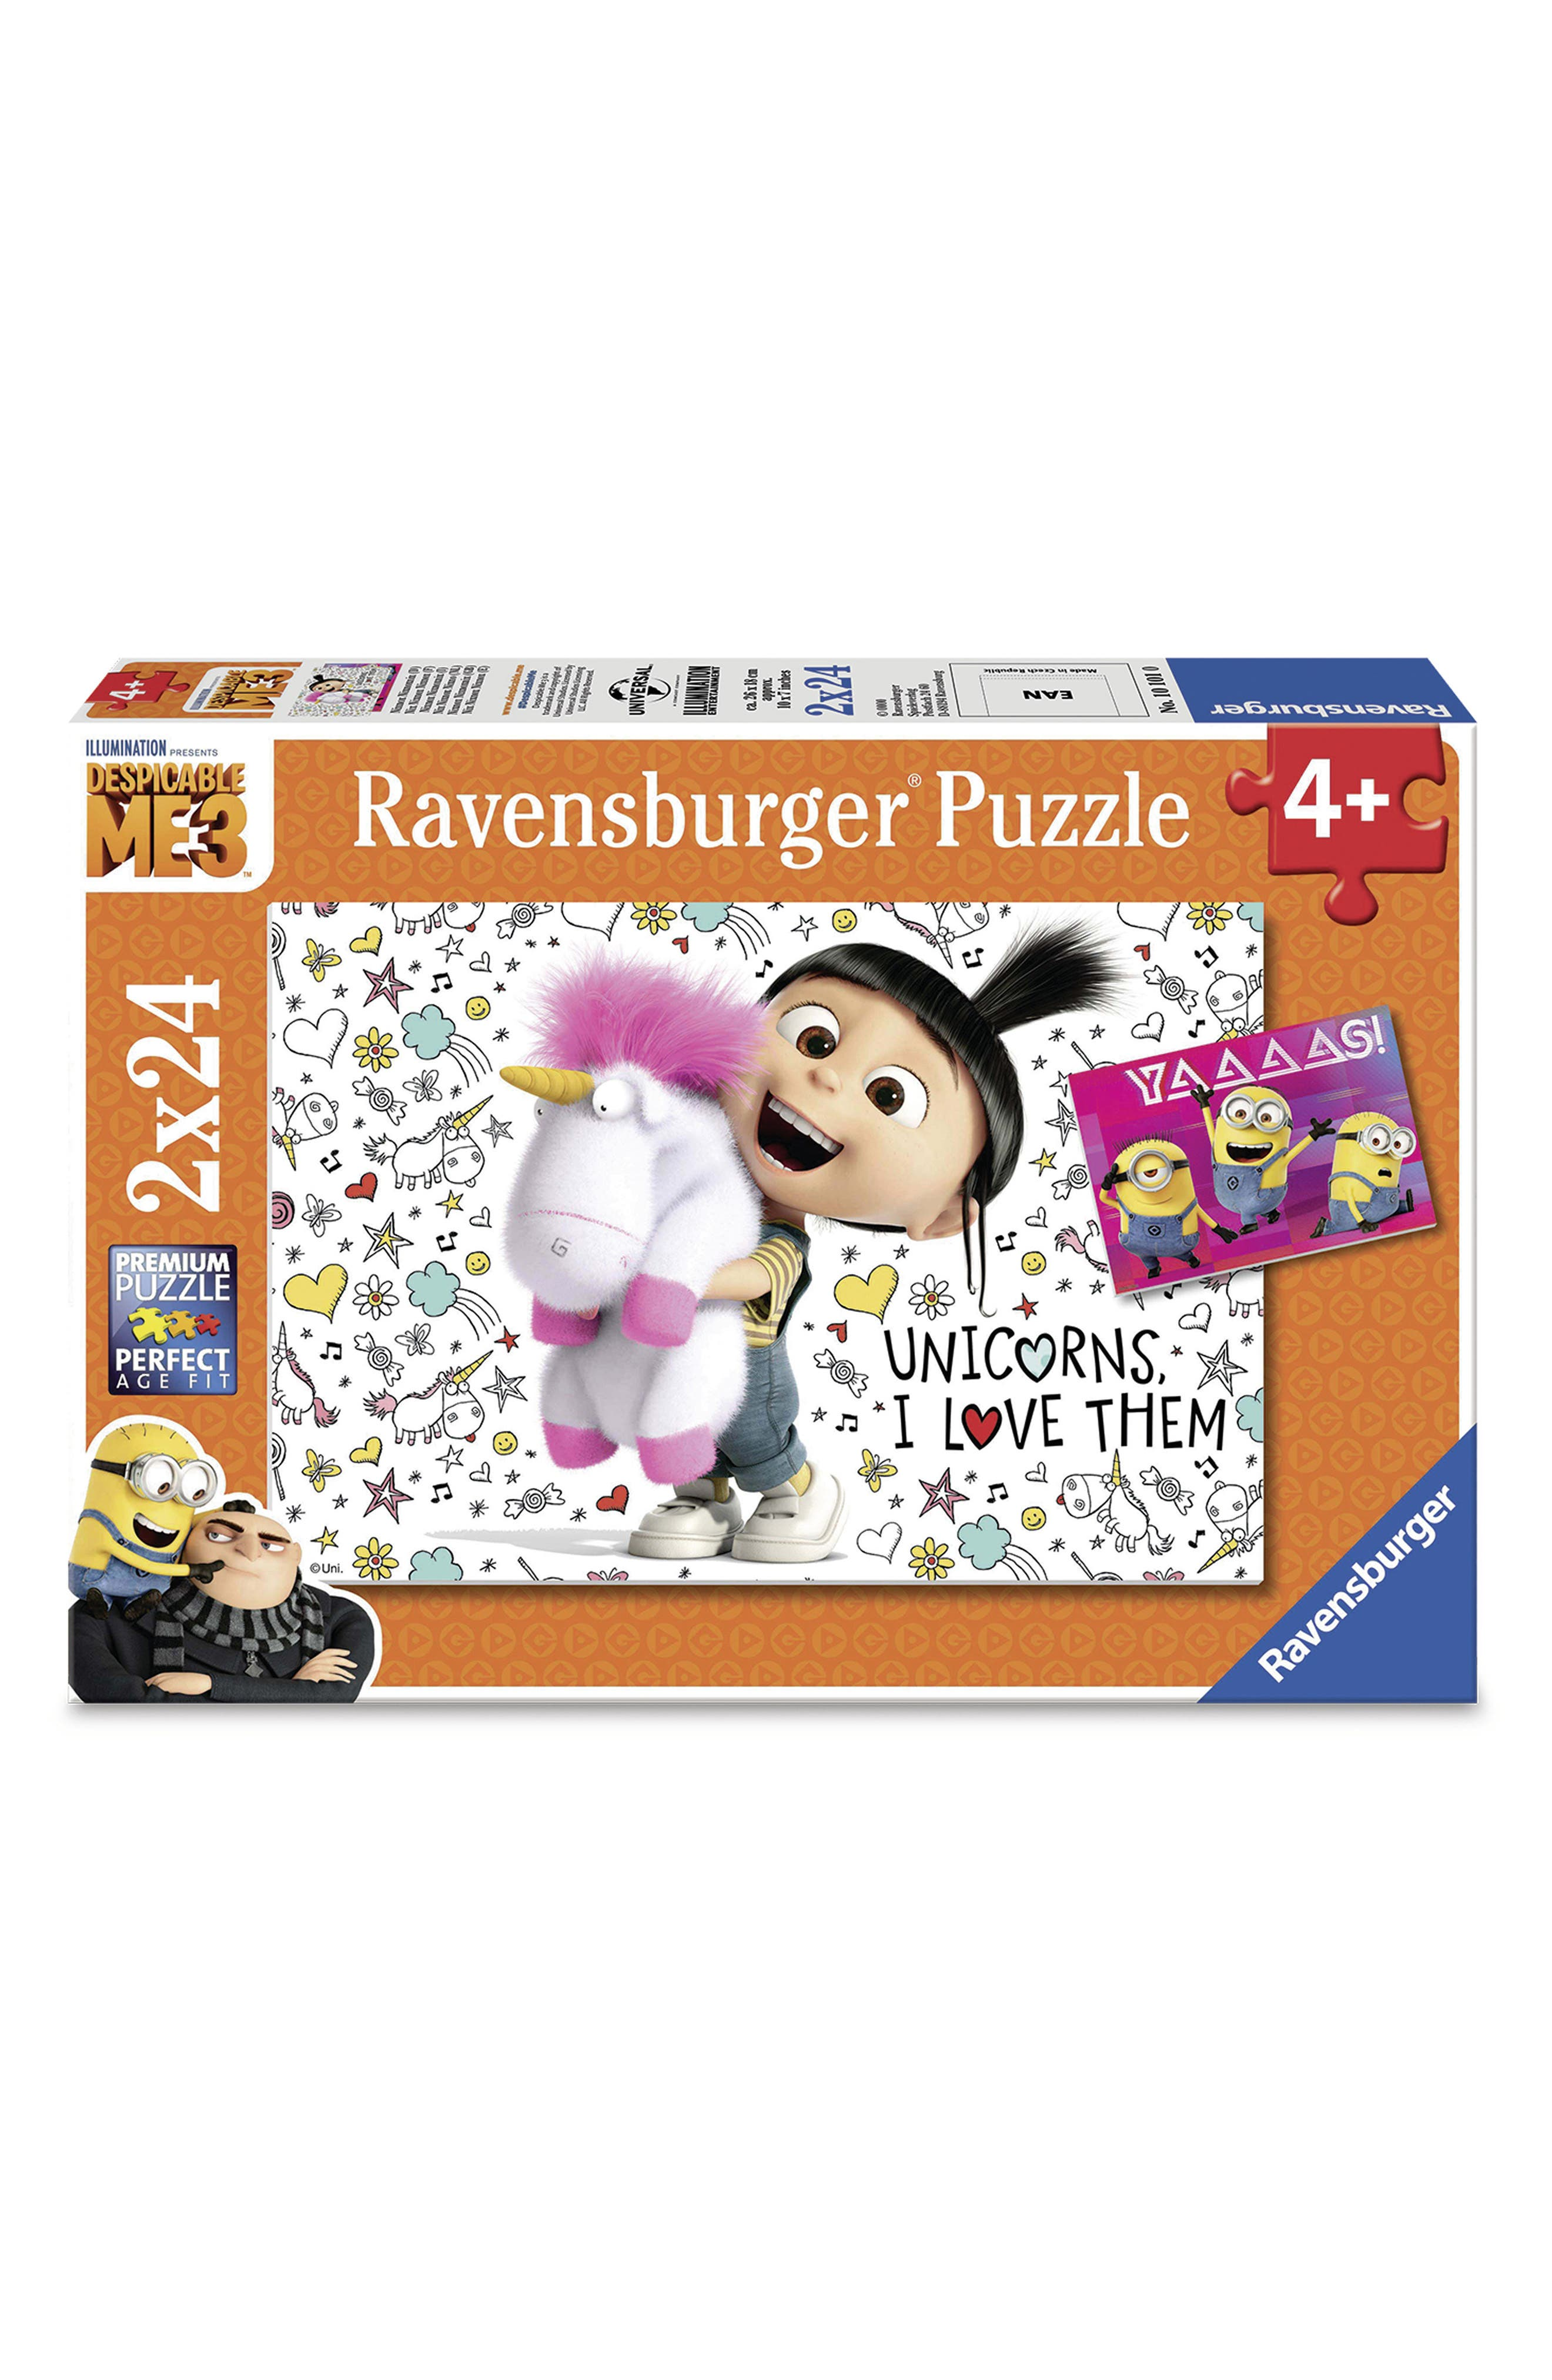 Alternate Image 1 Selected - Ravensburger 'Despicable Me 3' Set of 2 24-Piece Jigsaw Puzzles